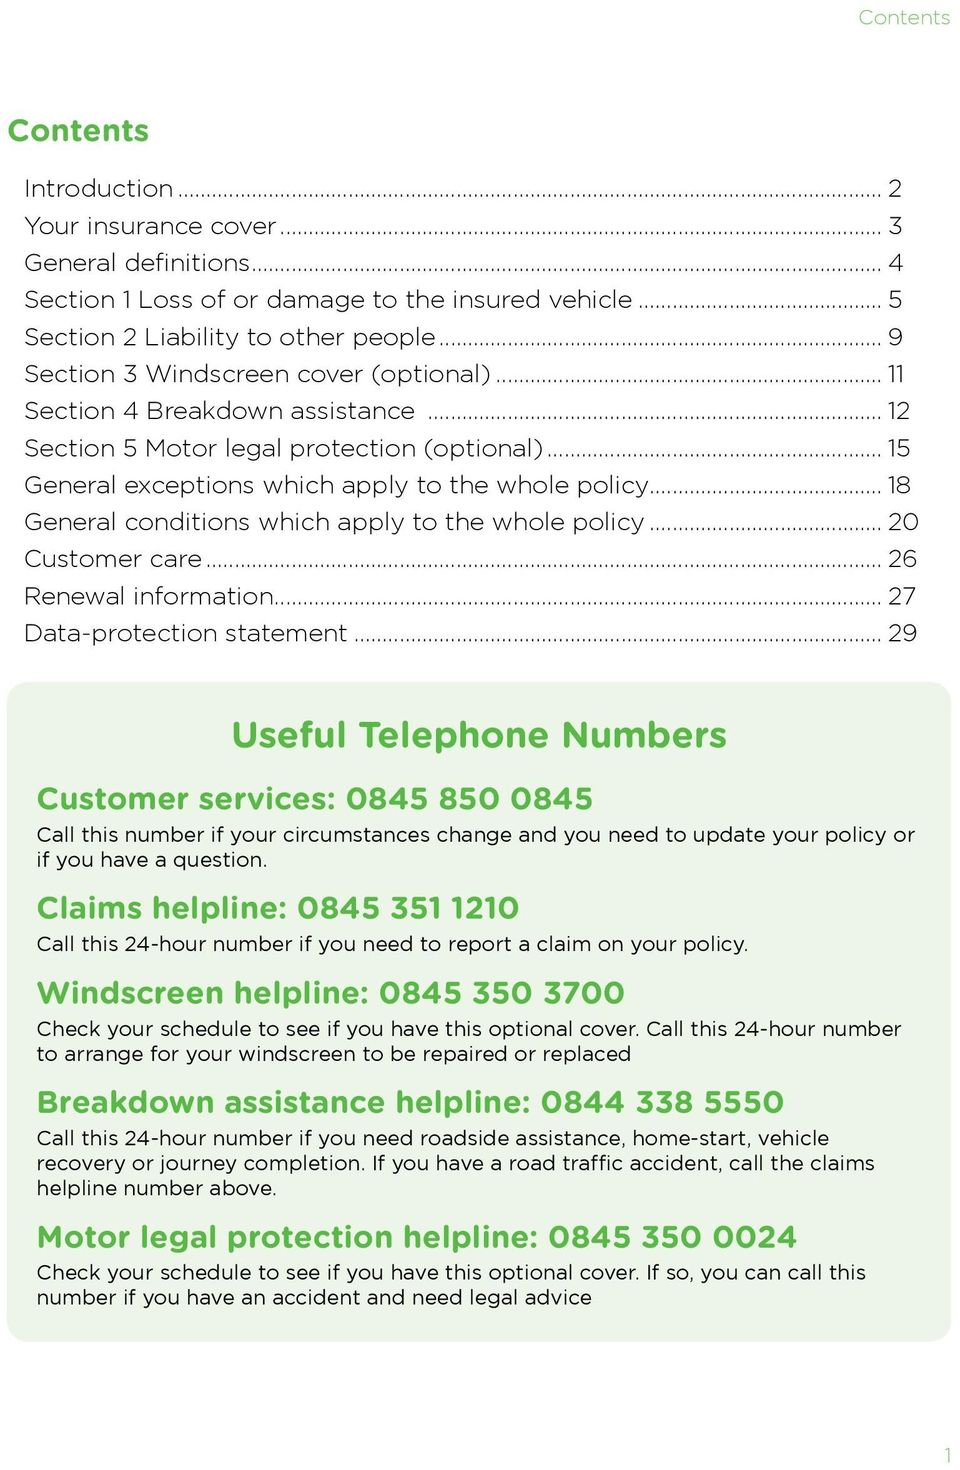 .. 18 General conditions which apply to the whole policy... 20 Customer care... 26 Renewal information... 27 Data-protection statement.